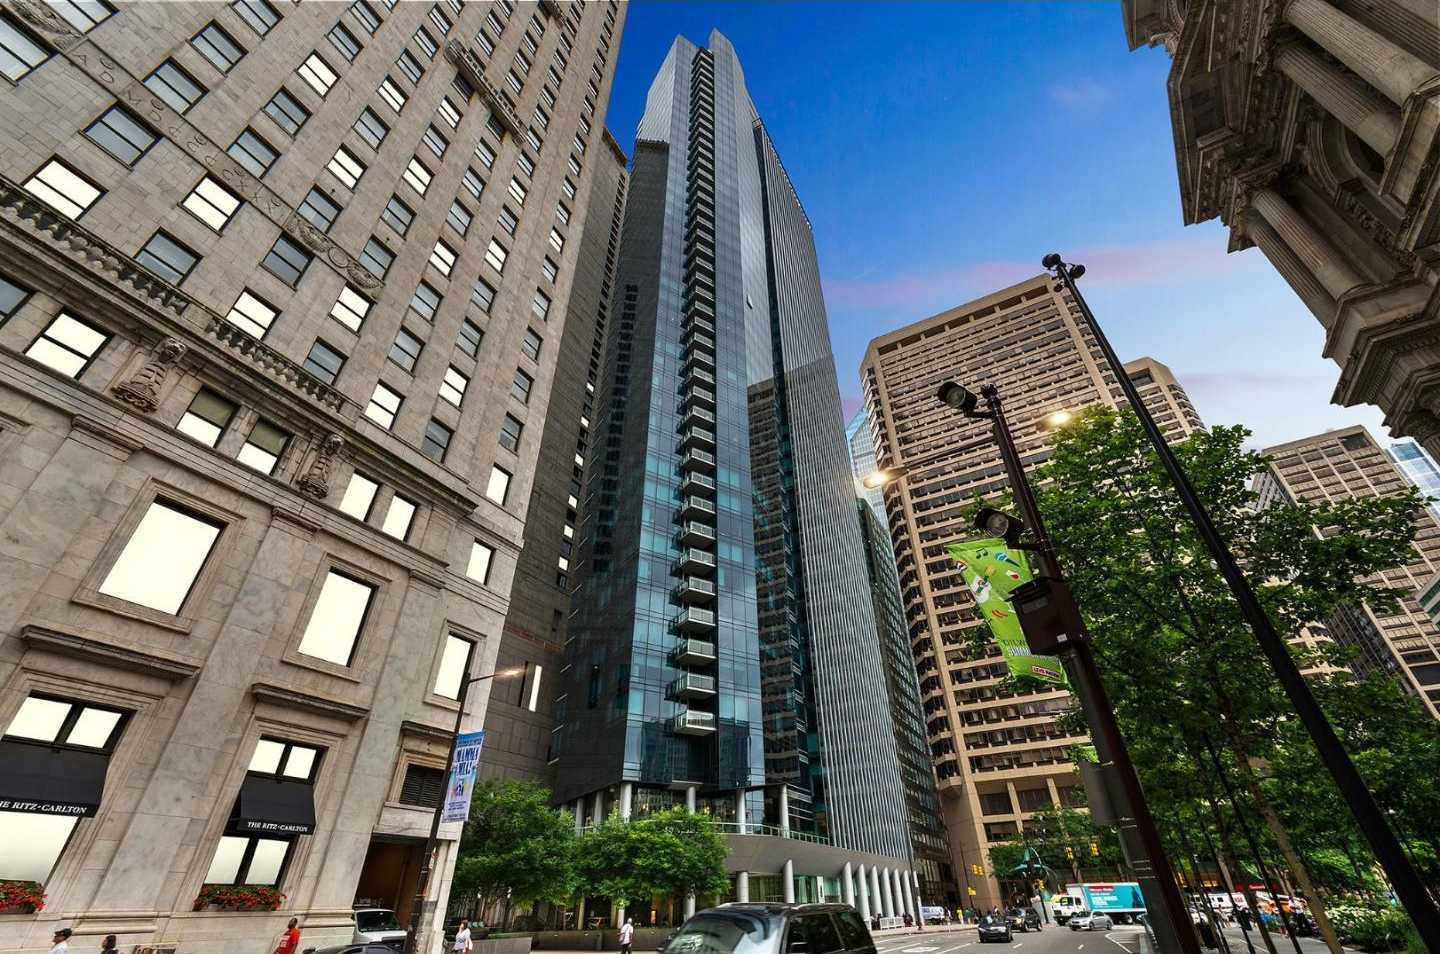 Philadelphia Luxury Home Condo-the ritz carlton residences 20H2 bryant wilde realty .jpg